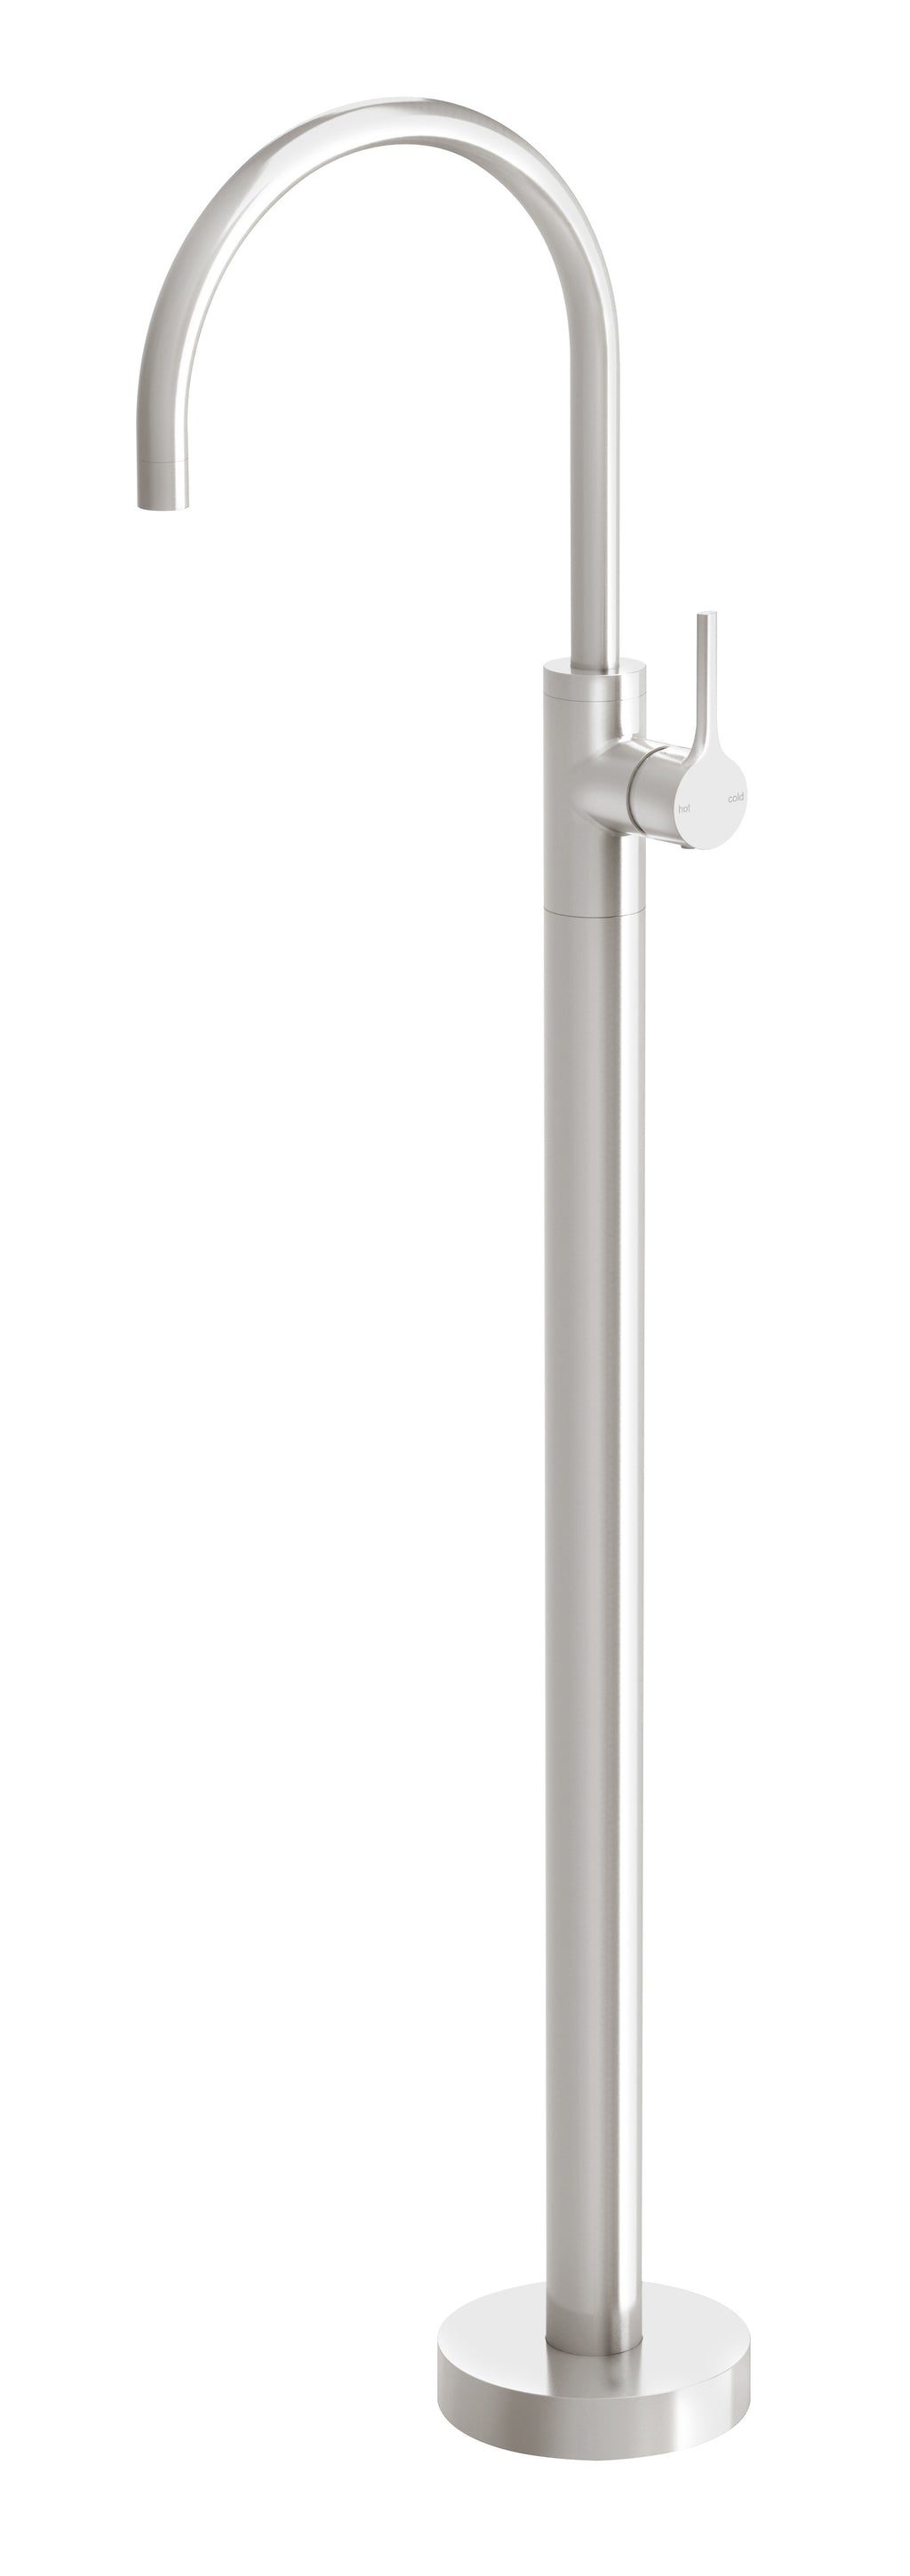 Vivid Slimline Oval Floor Mounted Bath Mixer (Brushed Nickel)